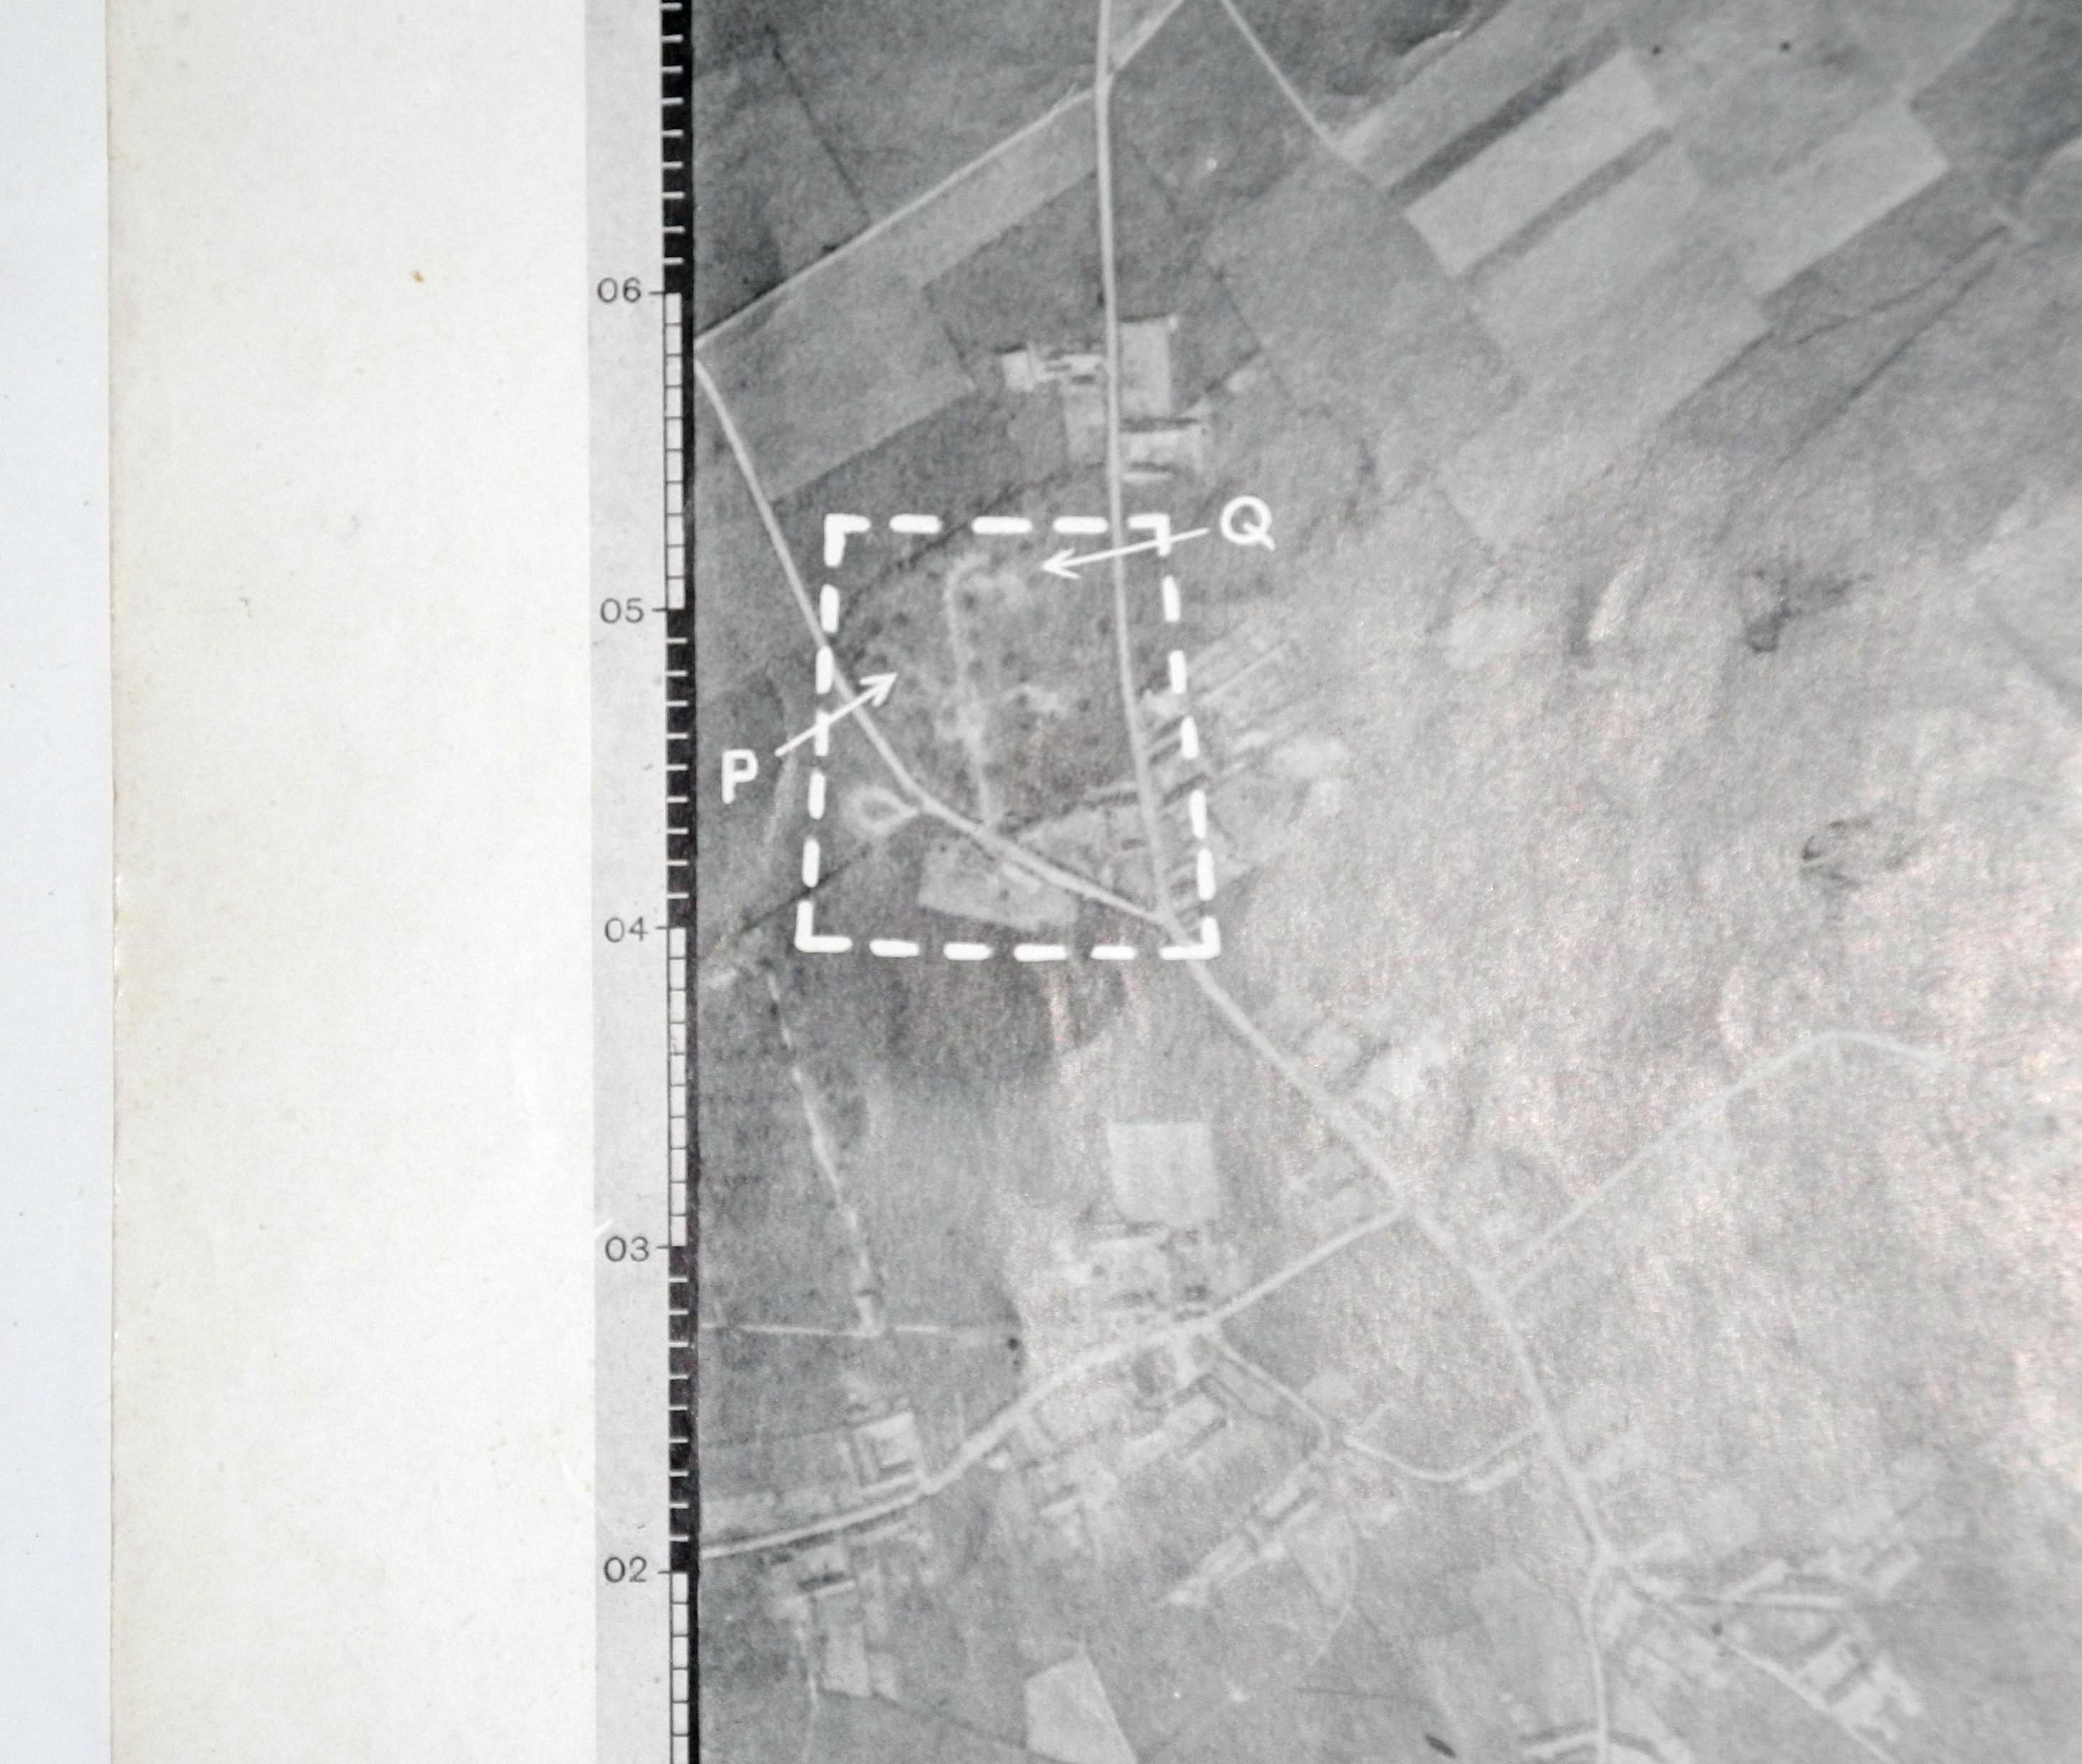 RAF Target map/photo for V-1 launch site, Fleury, France